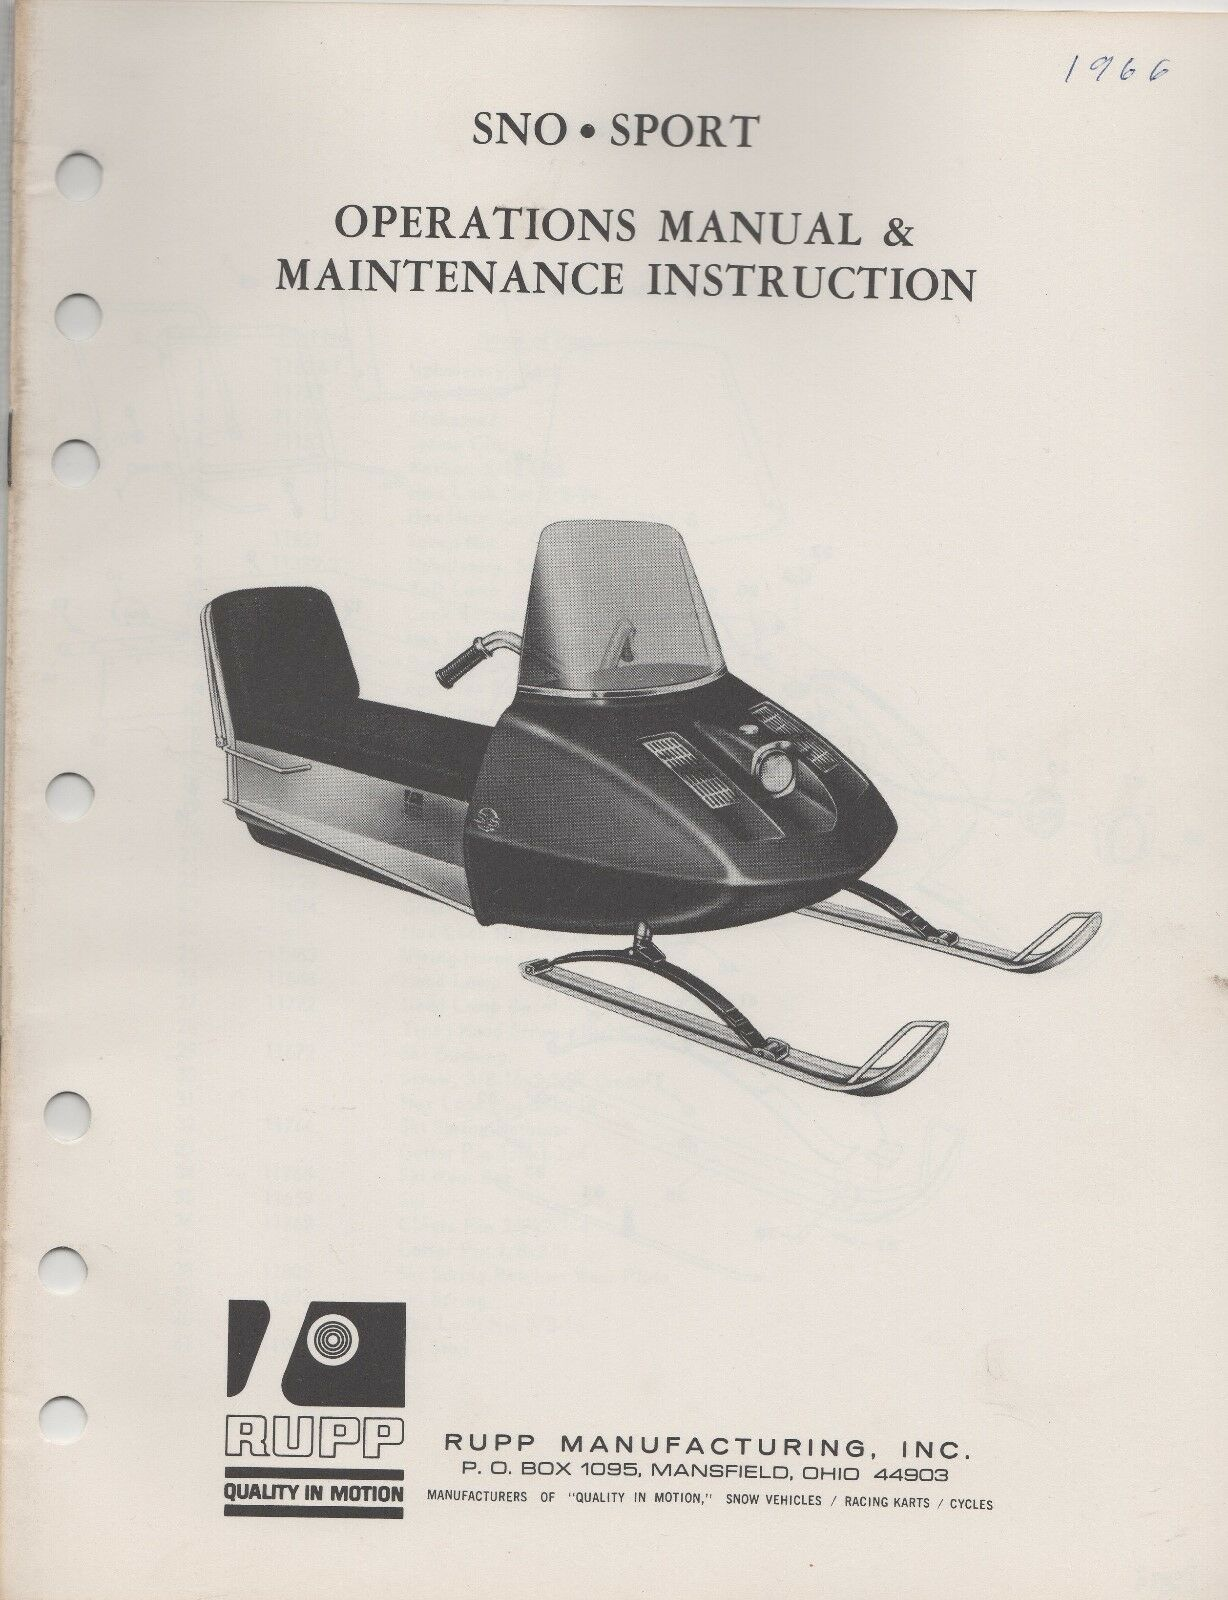 1966 RUPP  SNOWMOBILE SNO-SPORT OPERATIONS ,MAINTENANCE MANUAL (646)  amazing colorways